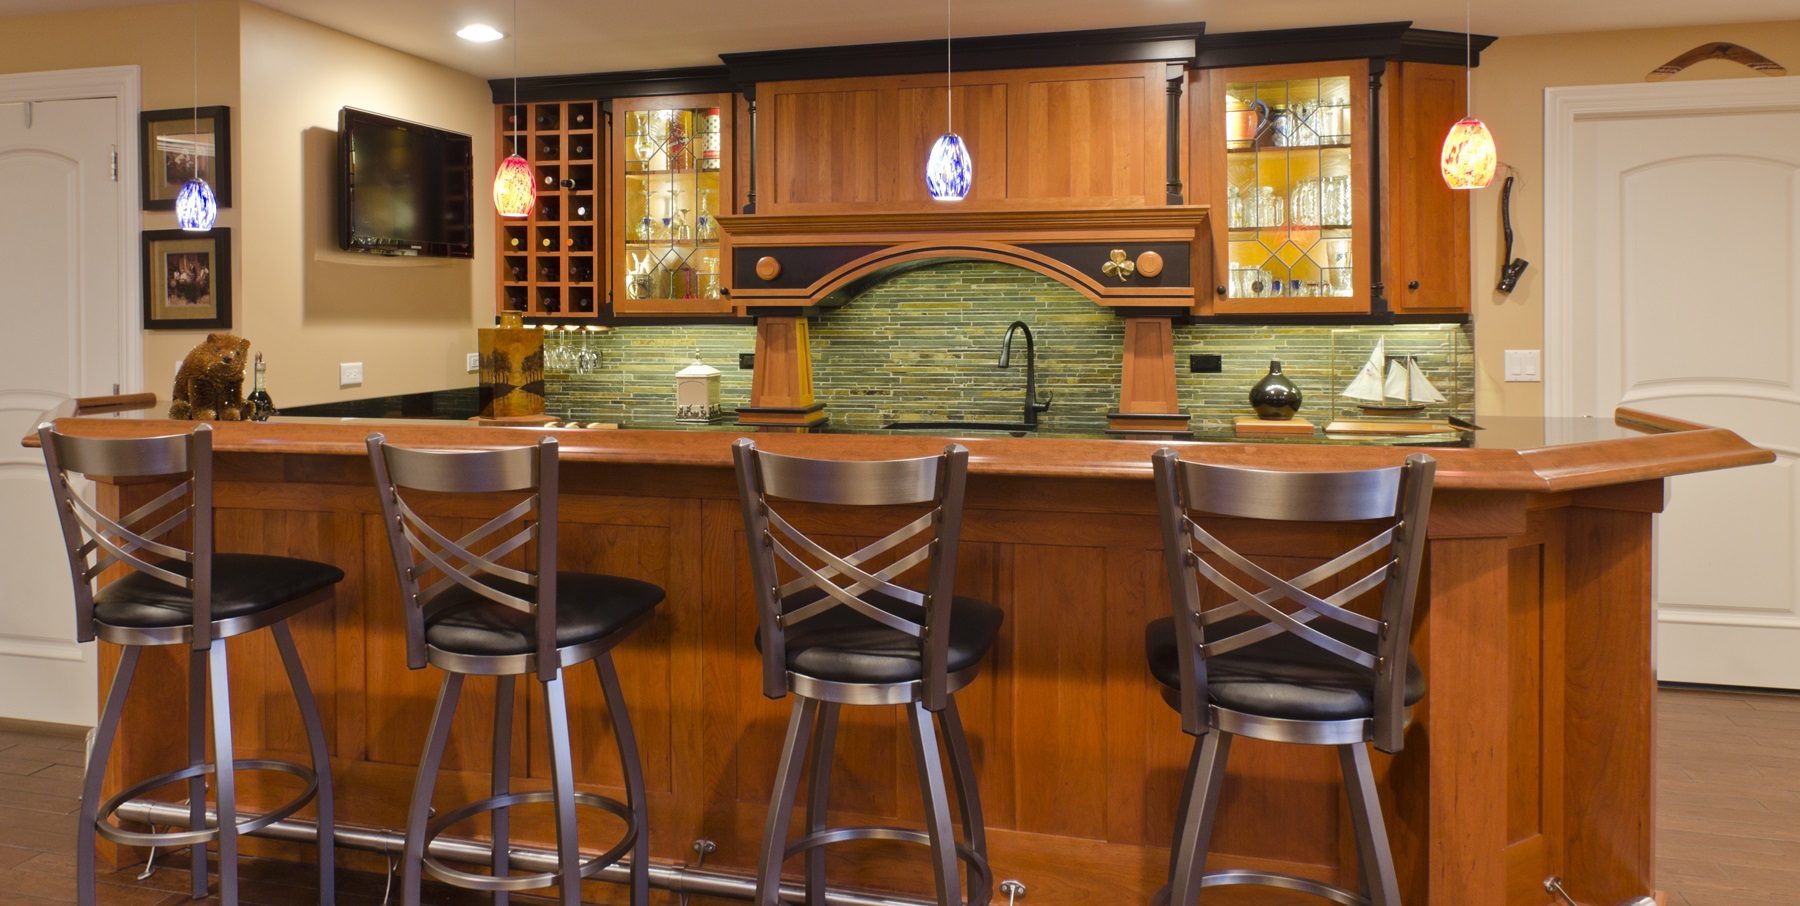 Lisle Home Remodeling Contractor Kitchen And Bathroom Remodeling Additions